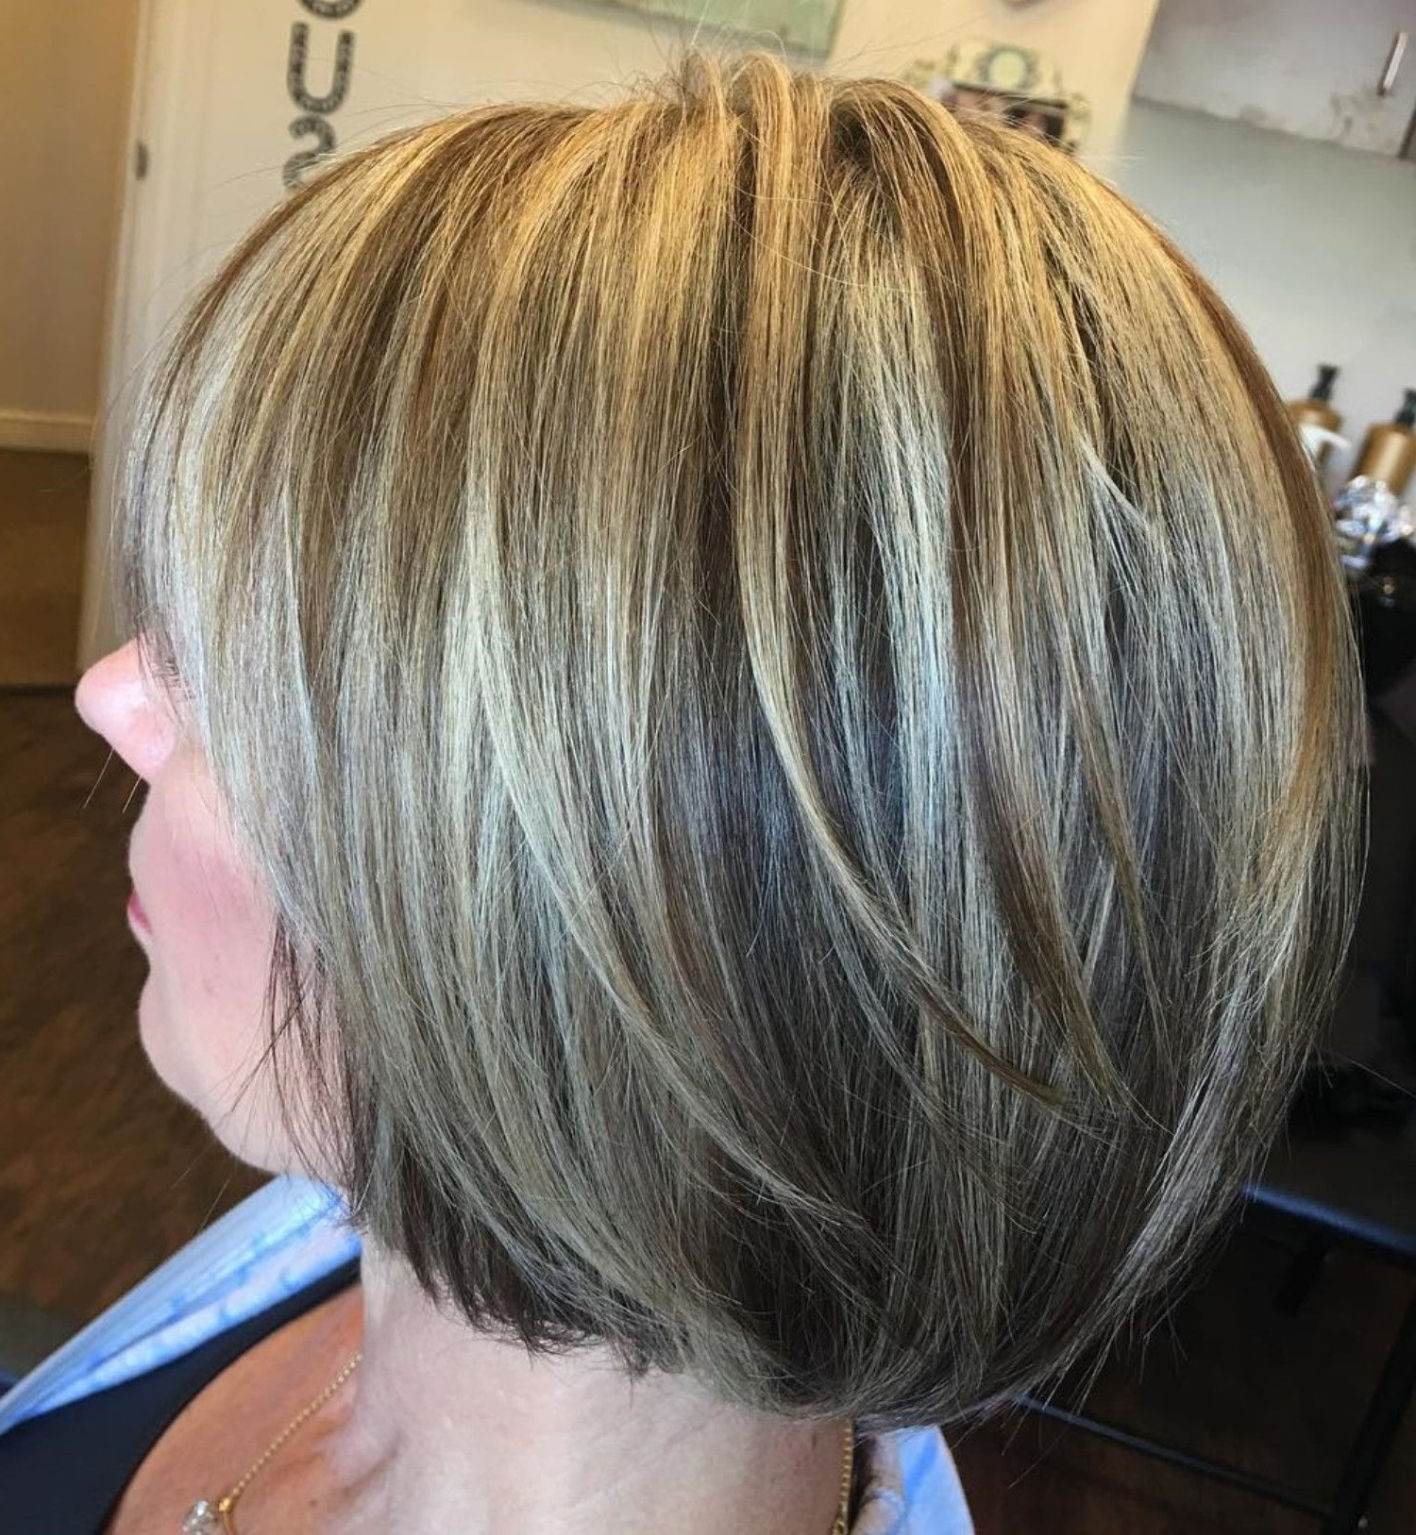 Well Liked Bronde Bob With Highlighted Bangs With 90 Classy And Simple Short Hairstyles For Women Over (View 20 of 20)